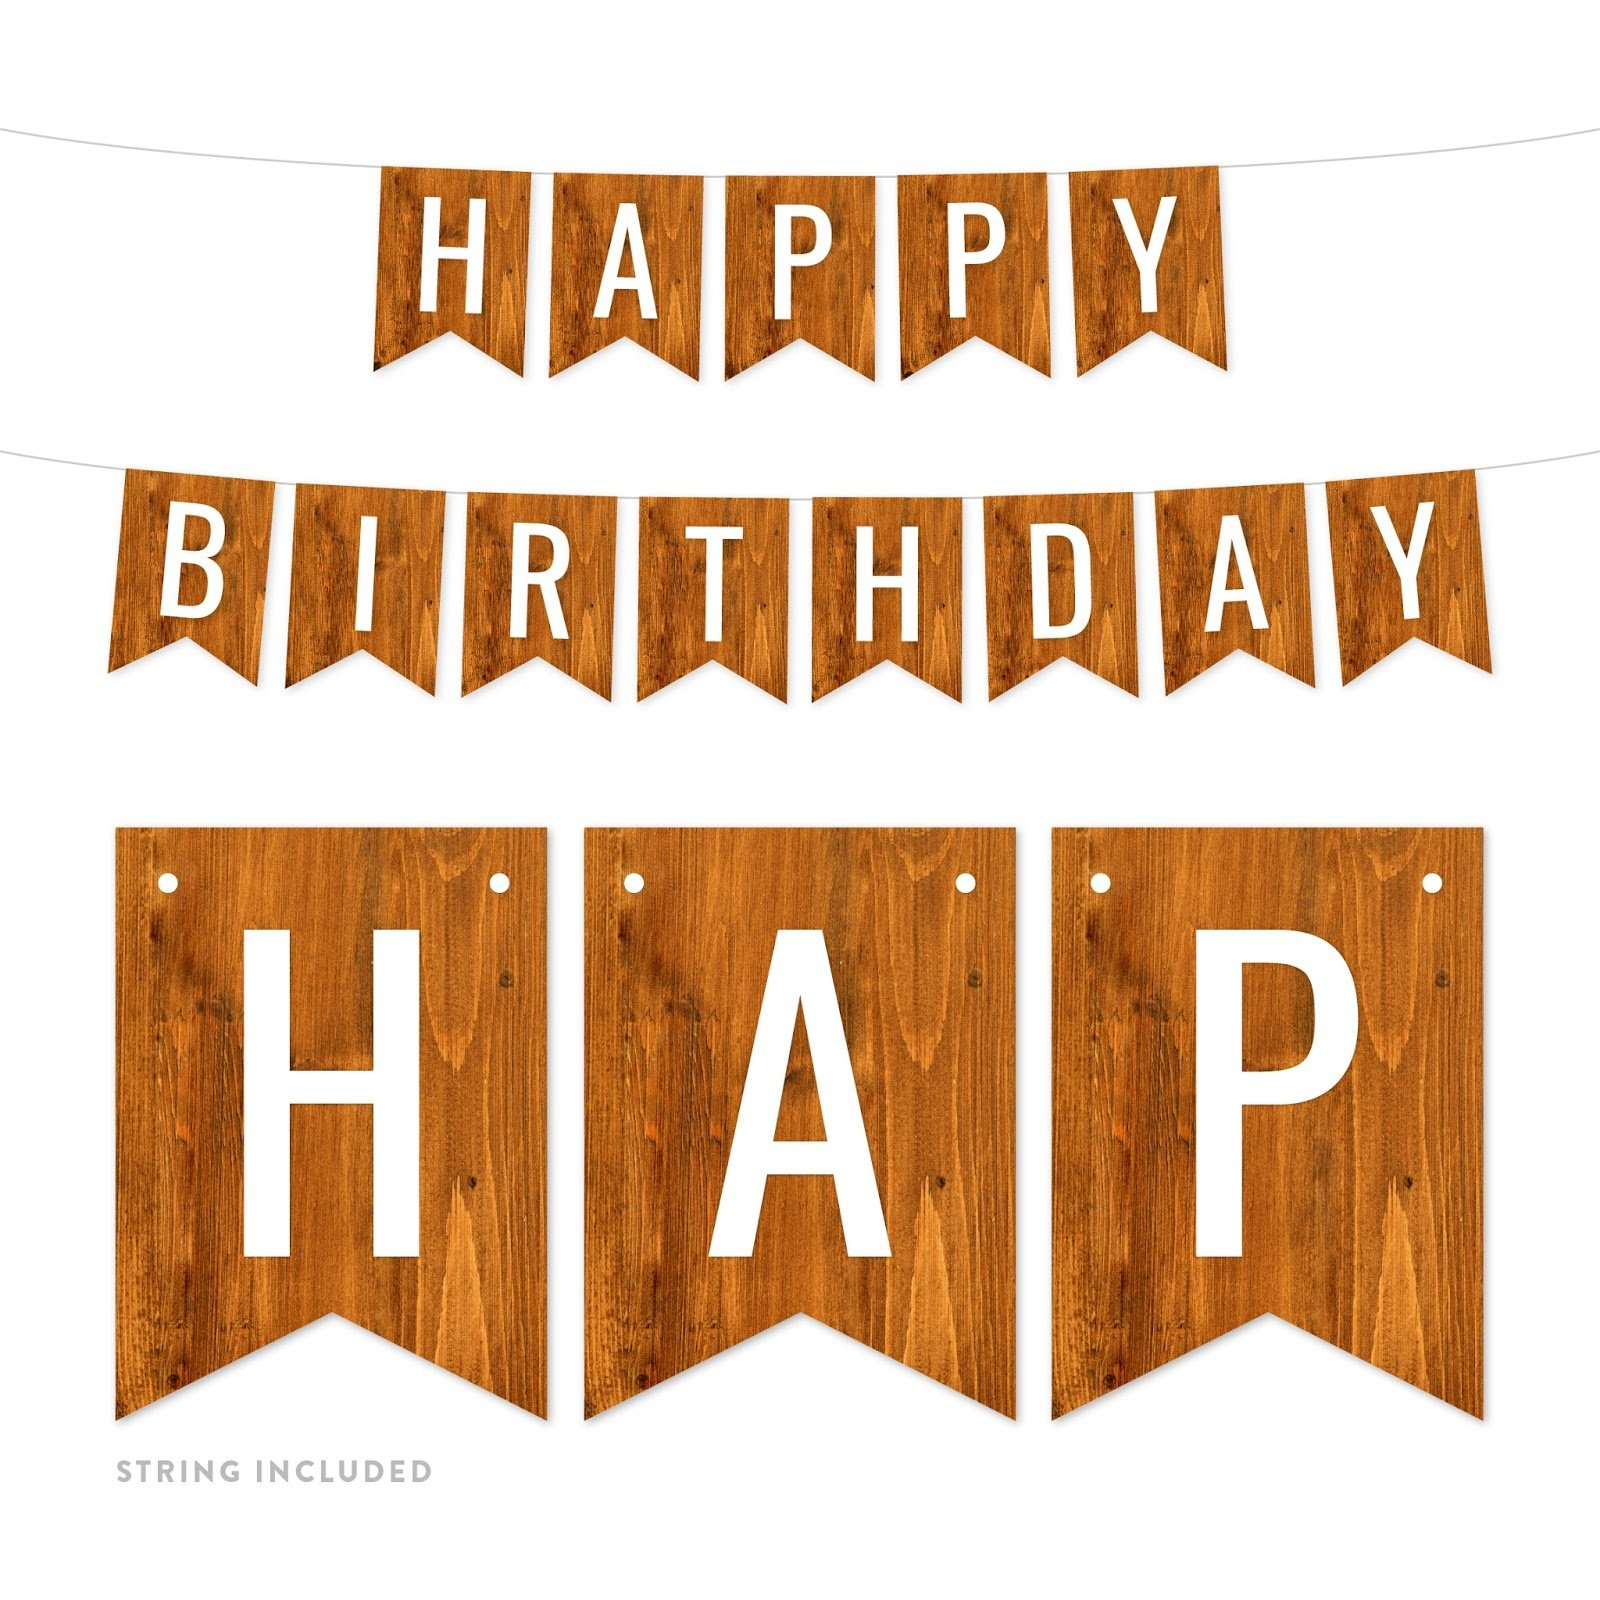 Andaz Press Rustic Barn Wood Birthday Party Banner Decorations, Happy Birthday, Approx 5-Feet, 1-Set, Wedding Bridal Shower Bachelorette Birthday Colored Themed Hanging Pennant Decor